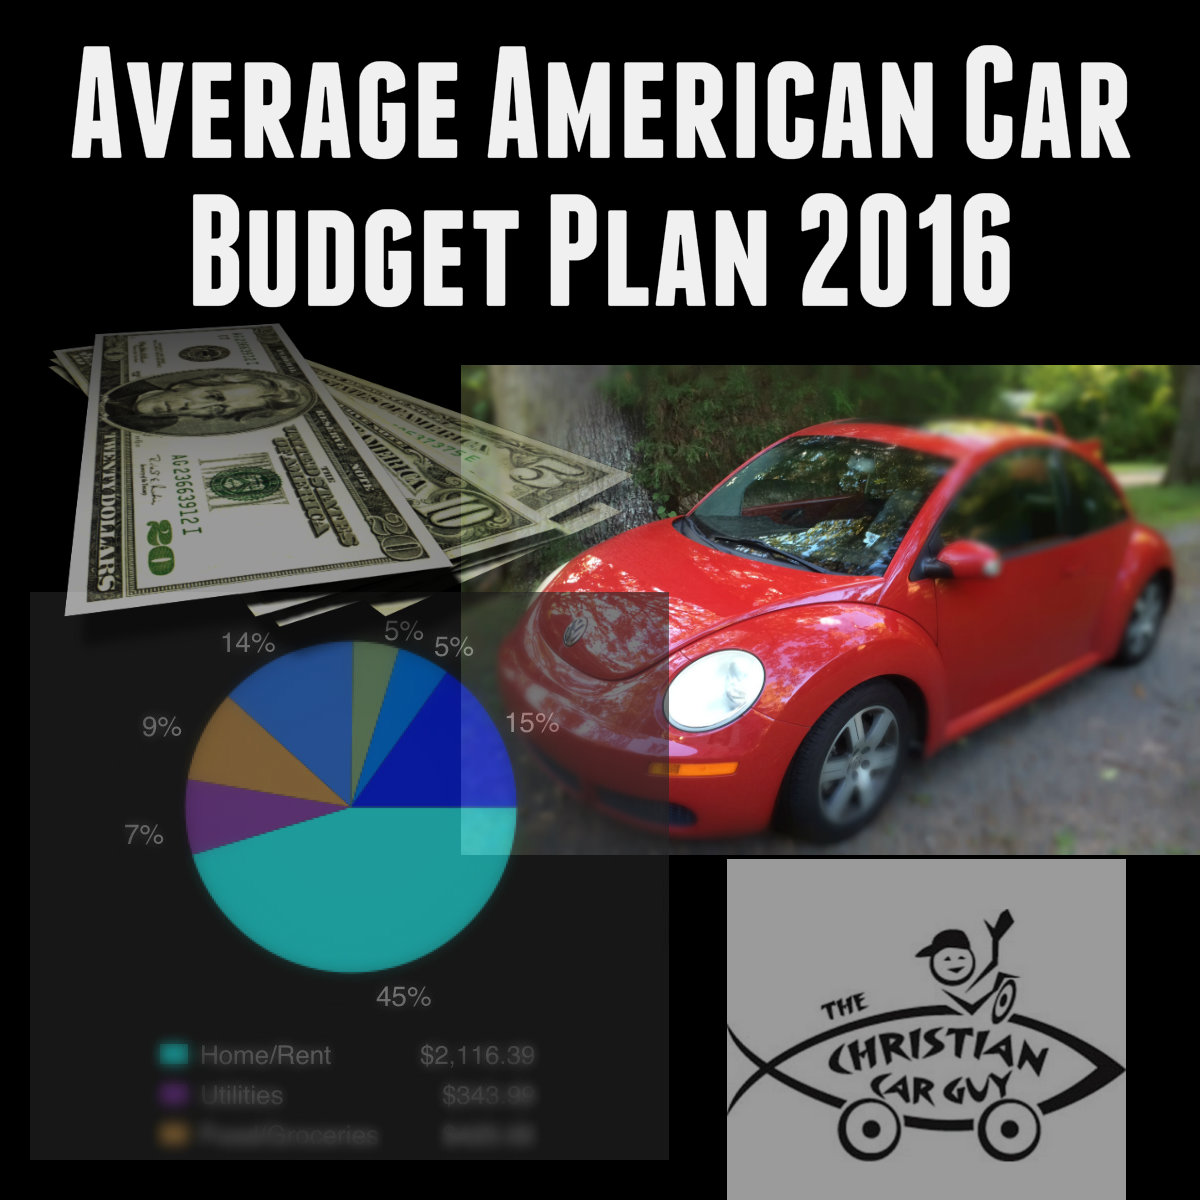 Average American Car Budget Plan 2016